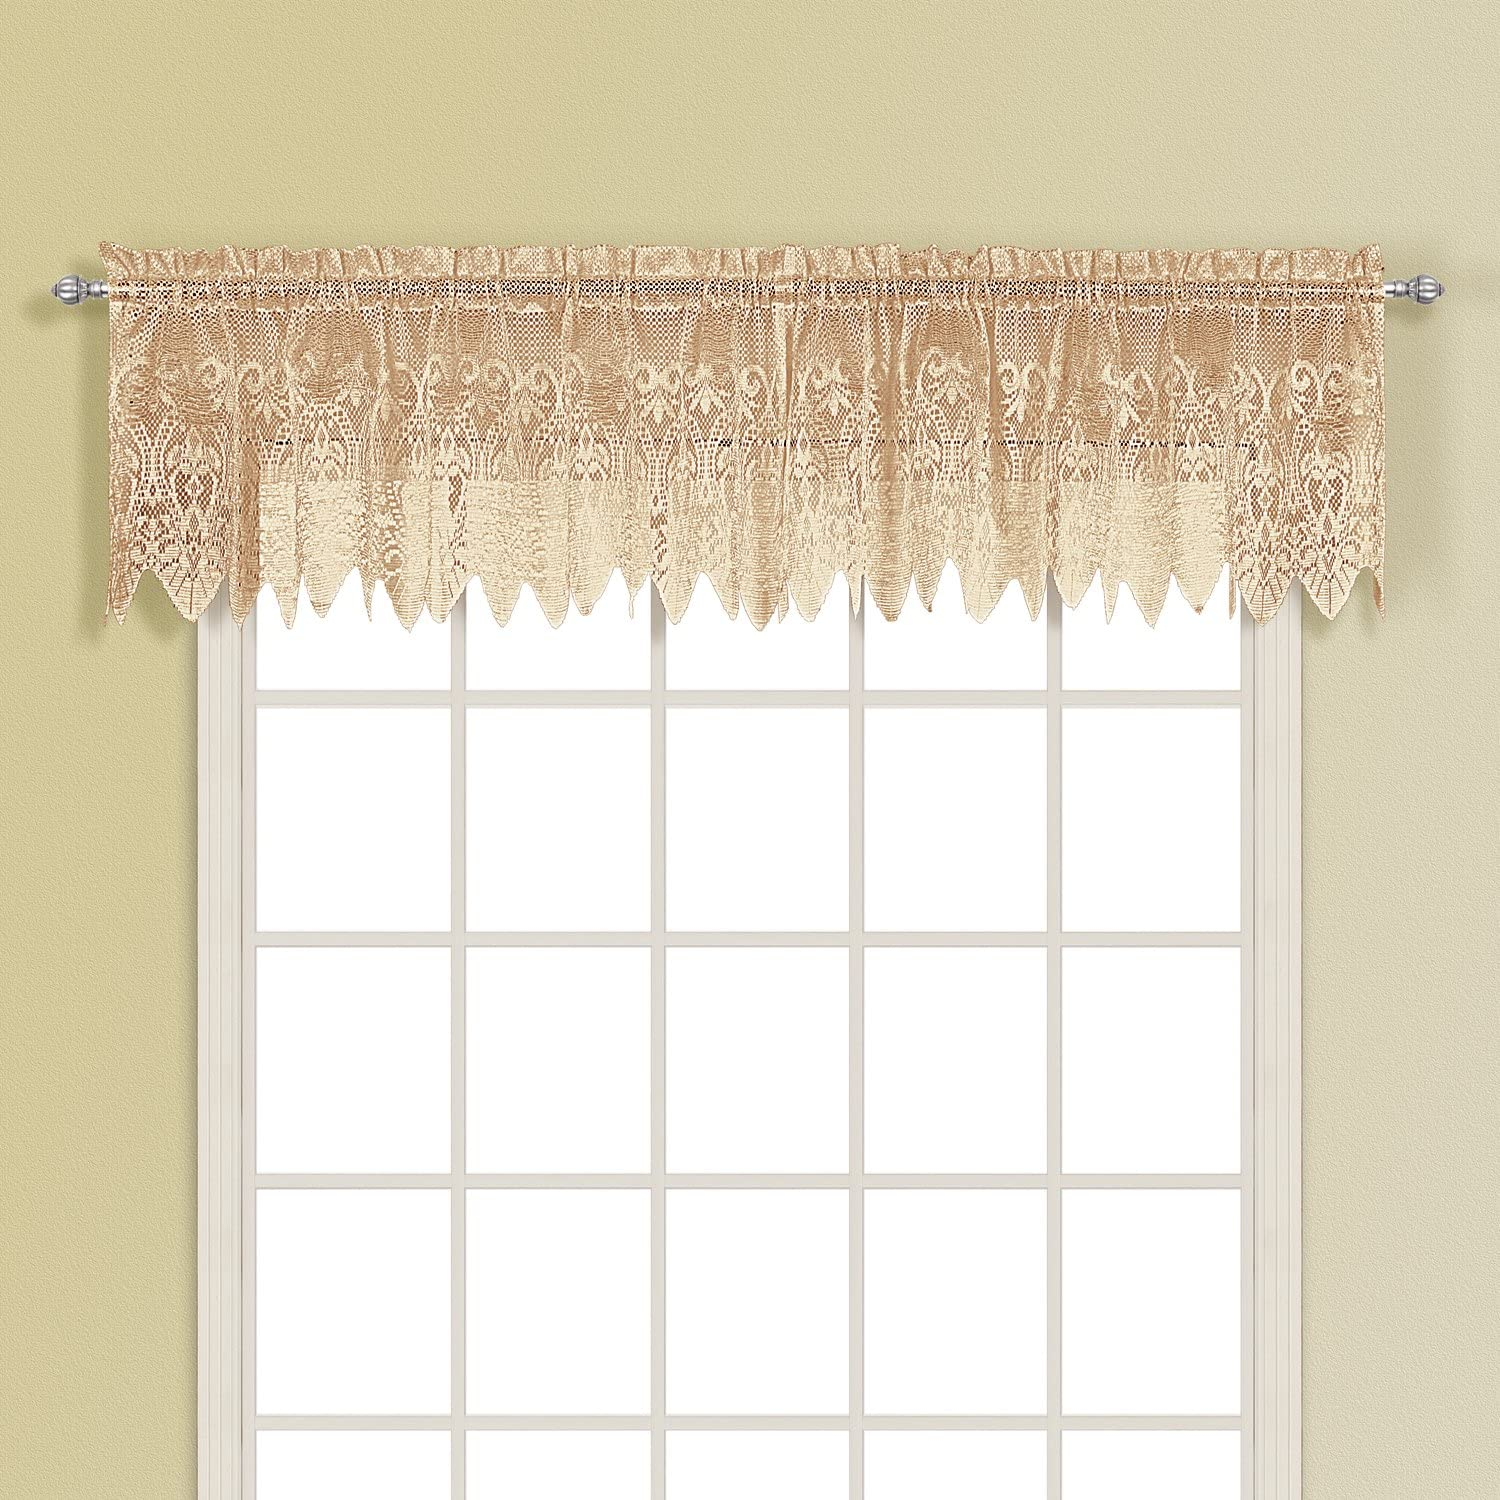 American Curtain and Home Patricia Window Treatment Valance, 52-Inch by 15-Inch, Taupe